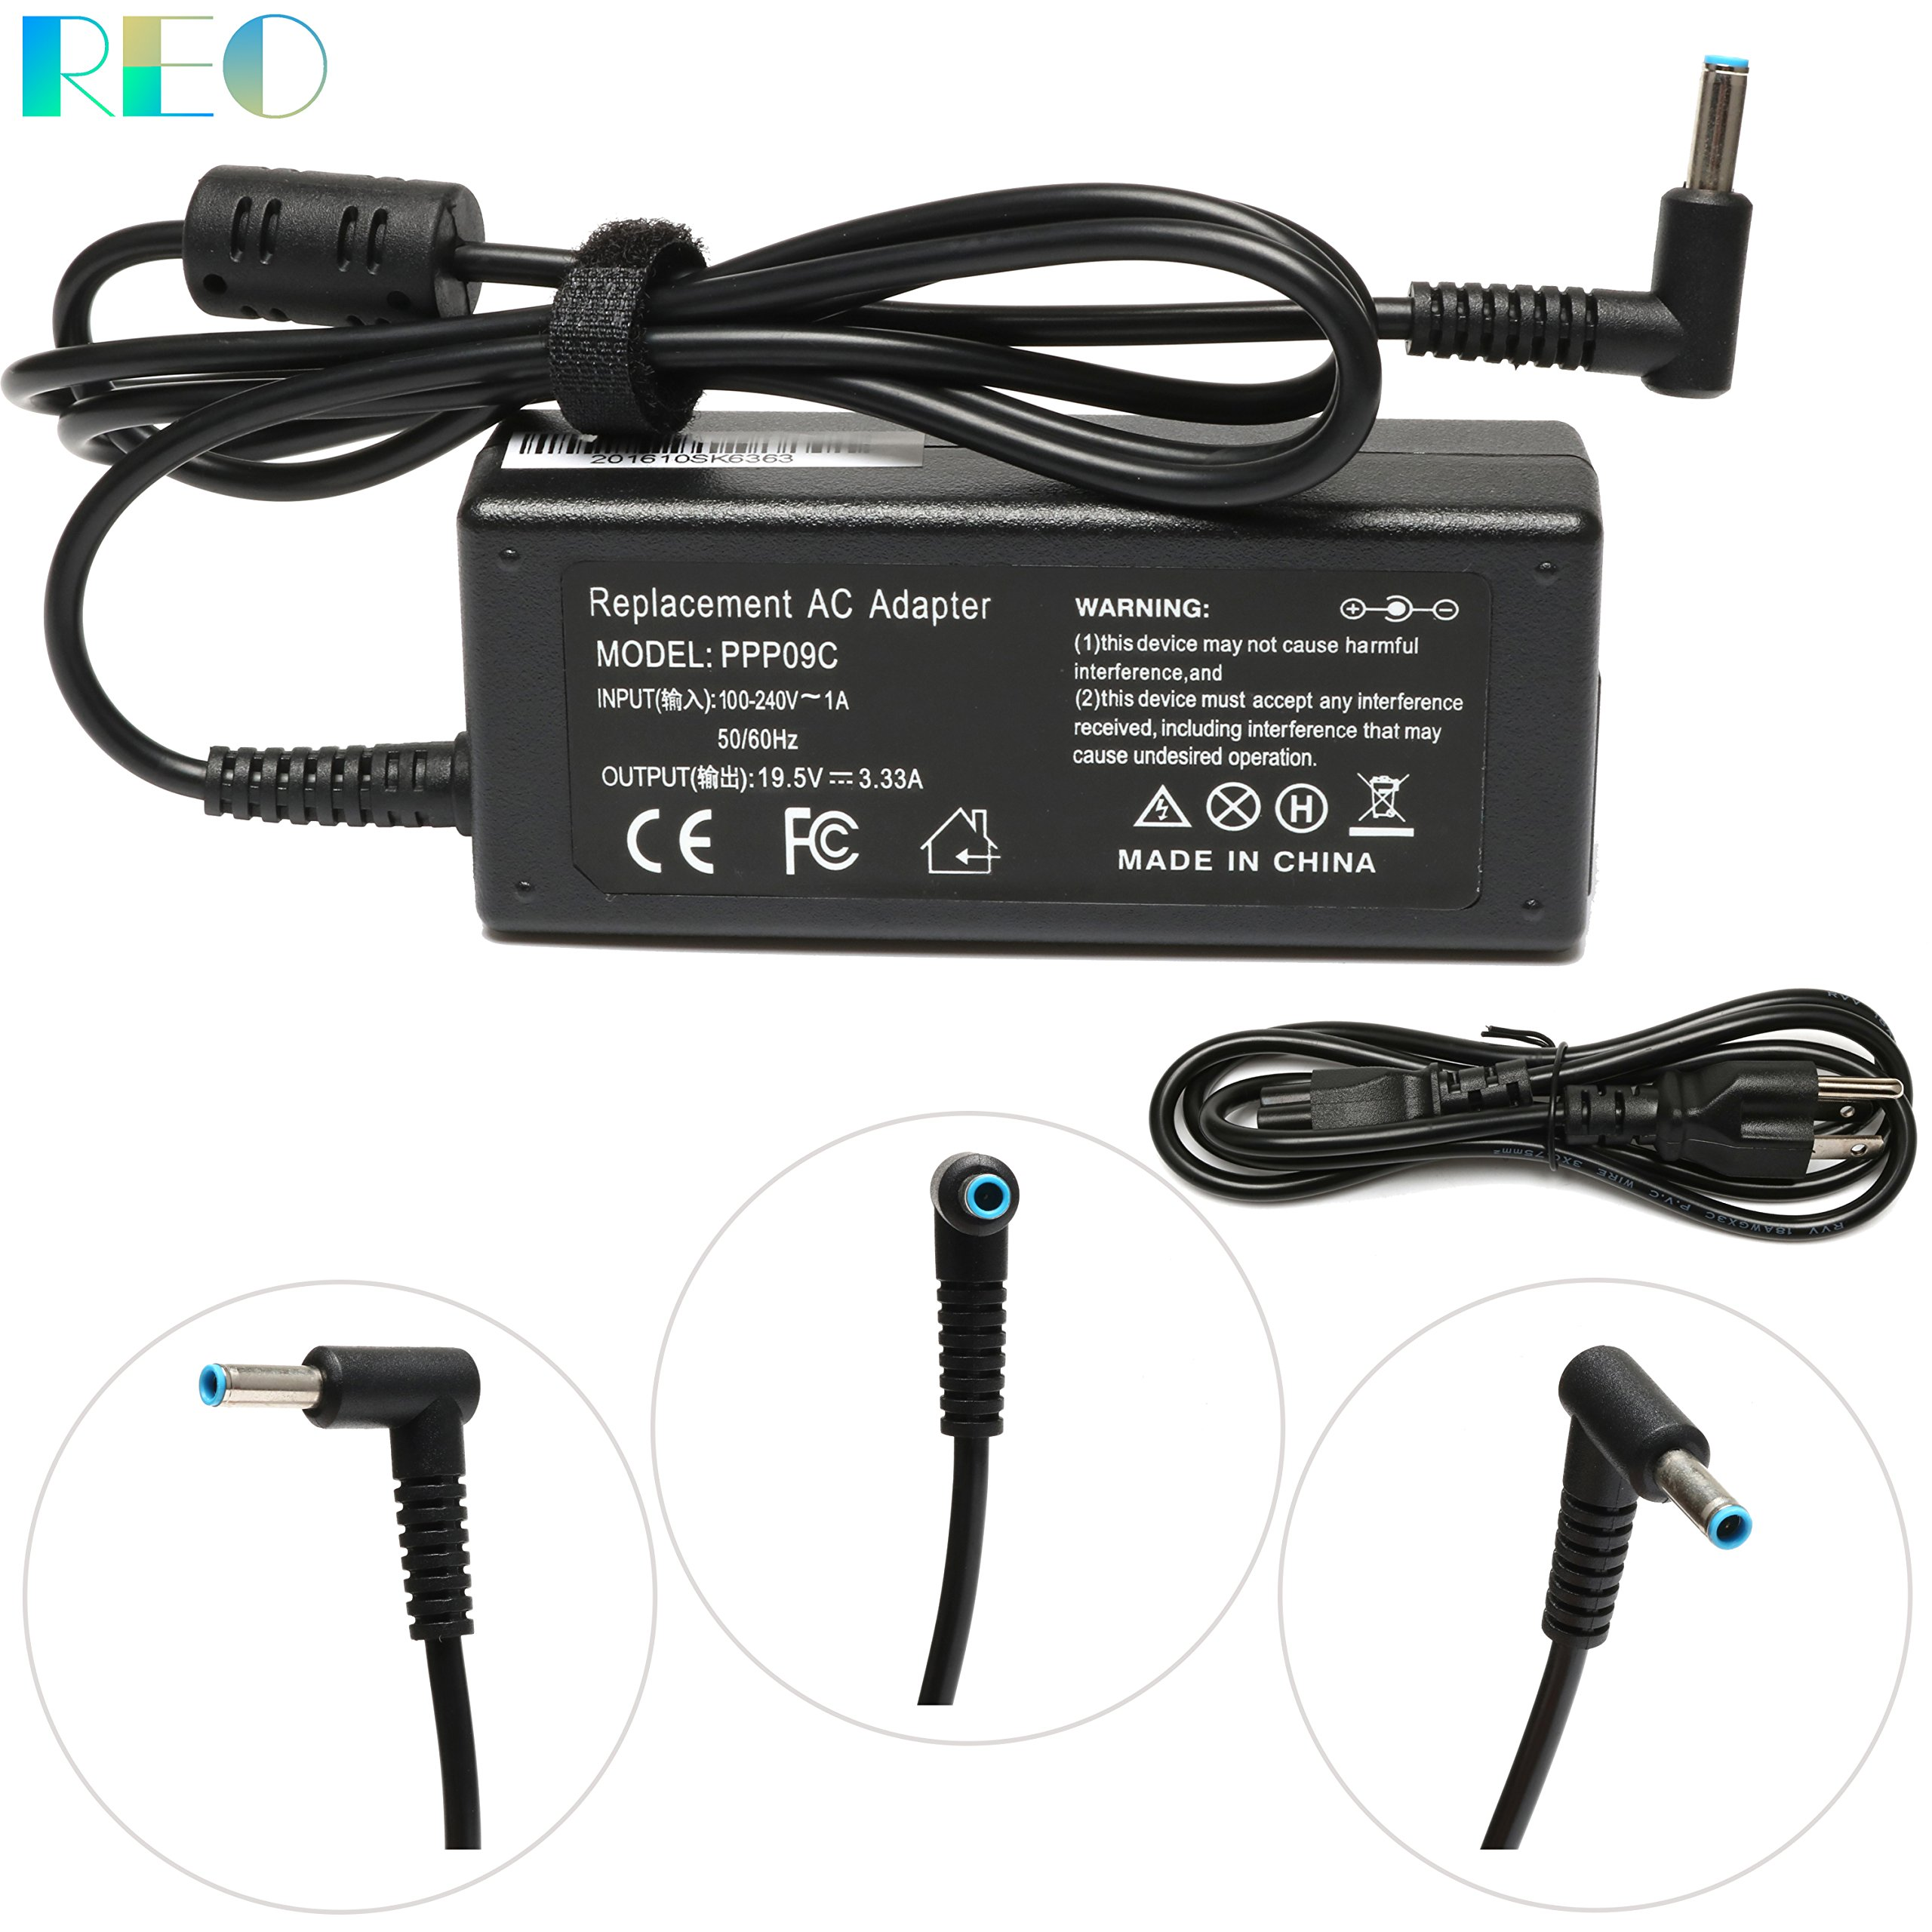 New 65W AC Charger For HP Elitebook 840-G4 820-G4 850-G4;ProBook 430-G4 440-G4 450-G4 455-G4 470-G4 Laptop Power Adapter Supply Cord